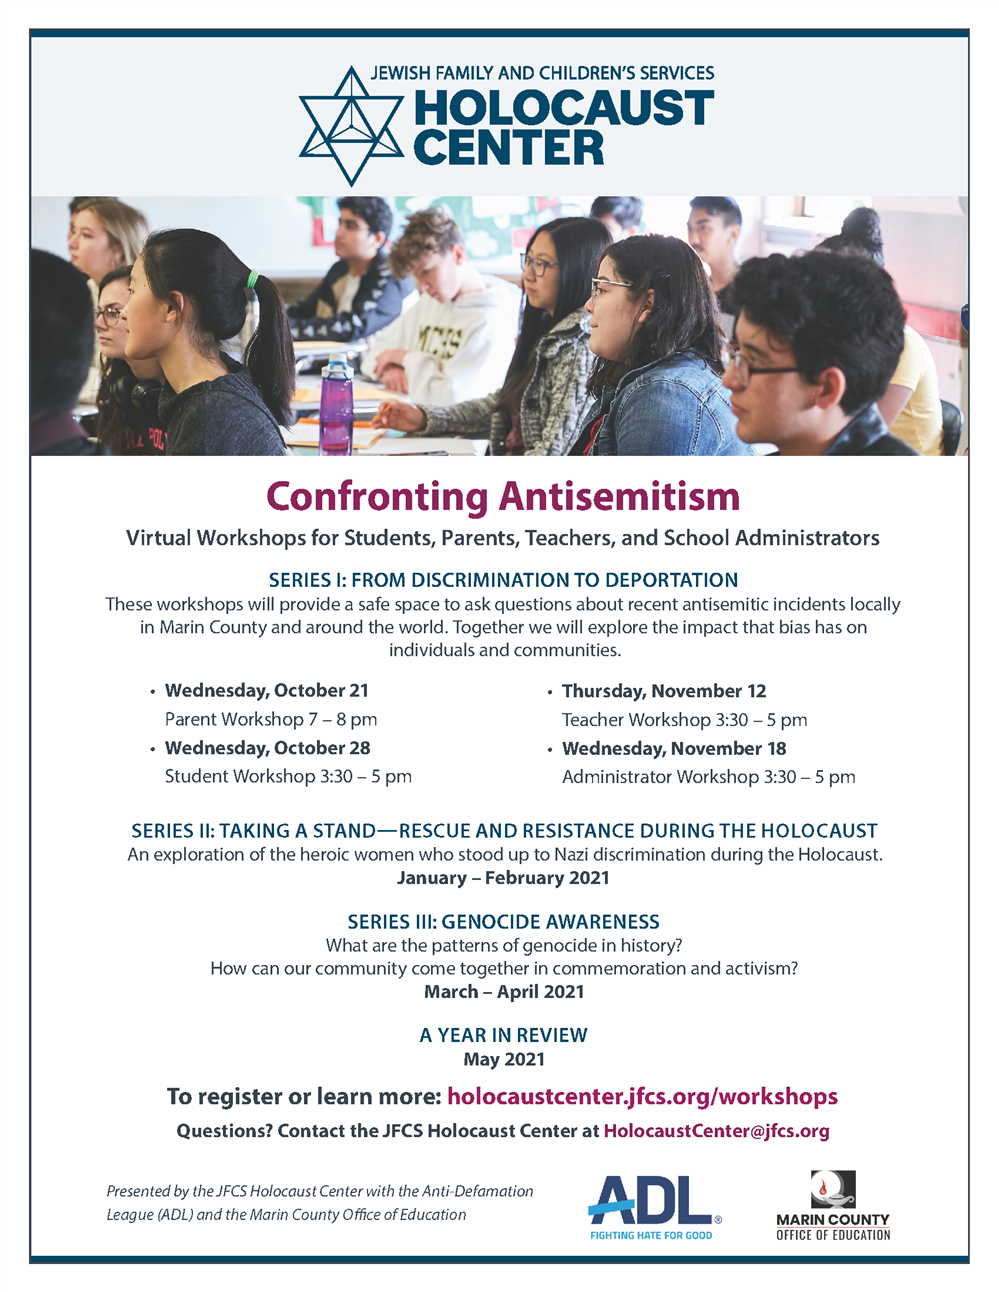 Image of Confronting Antisemitism Series Flyer